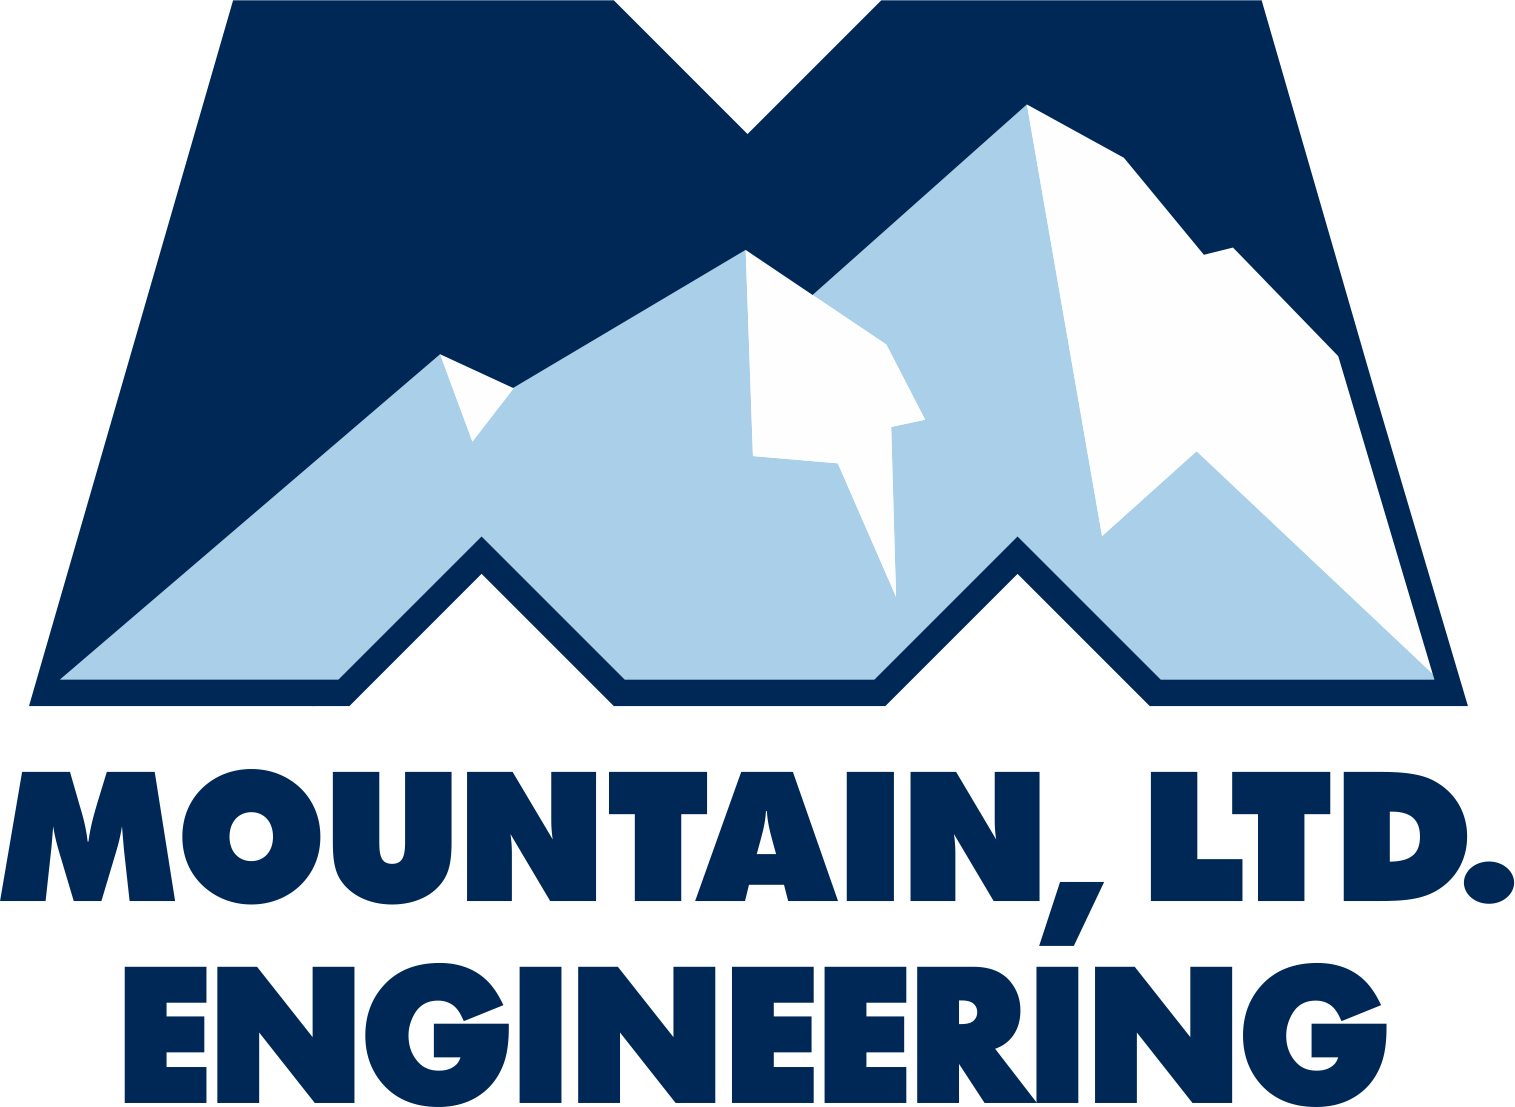 MOUNTAIN, LTD. Engineering services